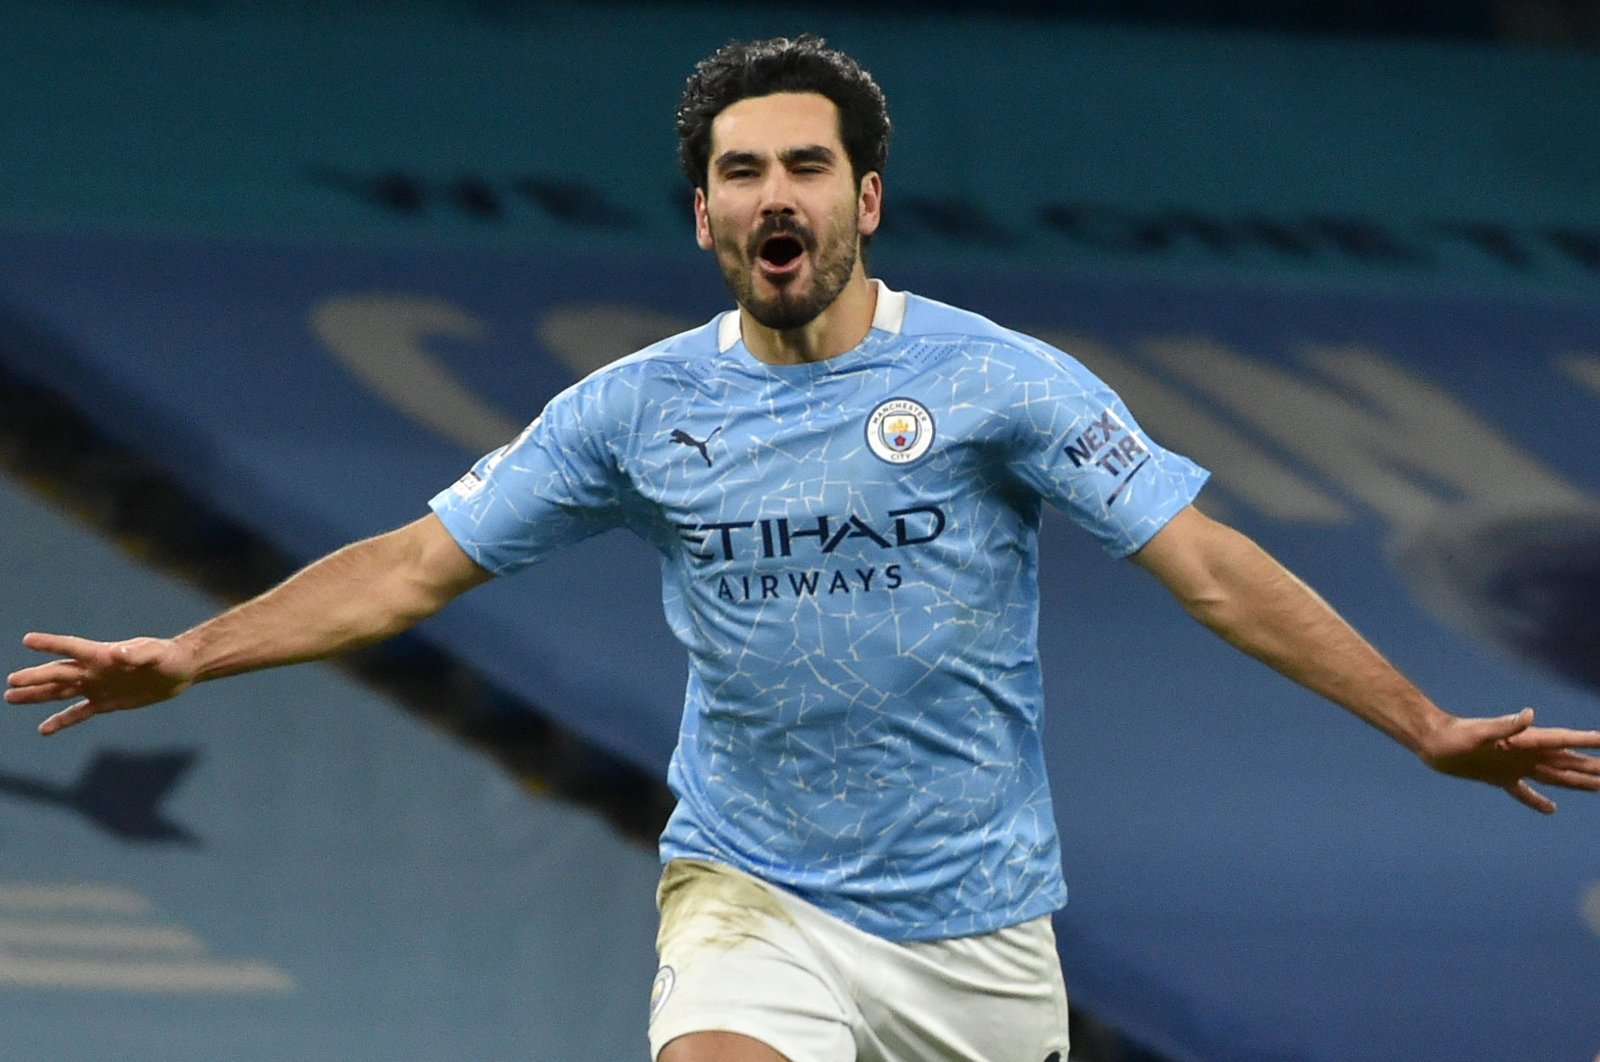 Manchester City's German-Turkish midfielder İlkay Gündoğan celebrates scoring his team's third goal during a Premier League match against Tottenham Hotspur at the Etihad Stadium in Manchester, England, Feb. 13, 2021. (AFP Photo)